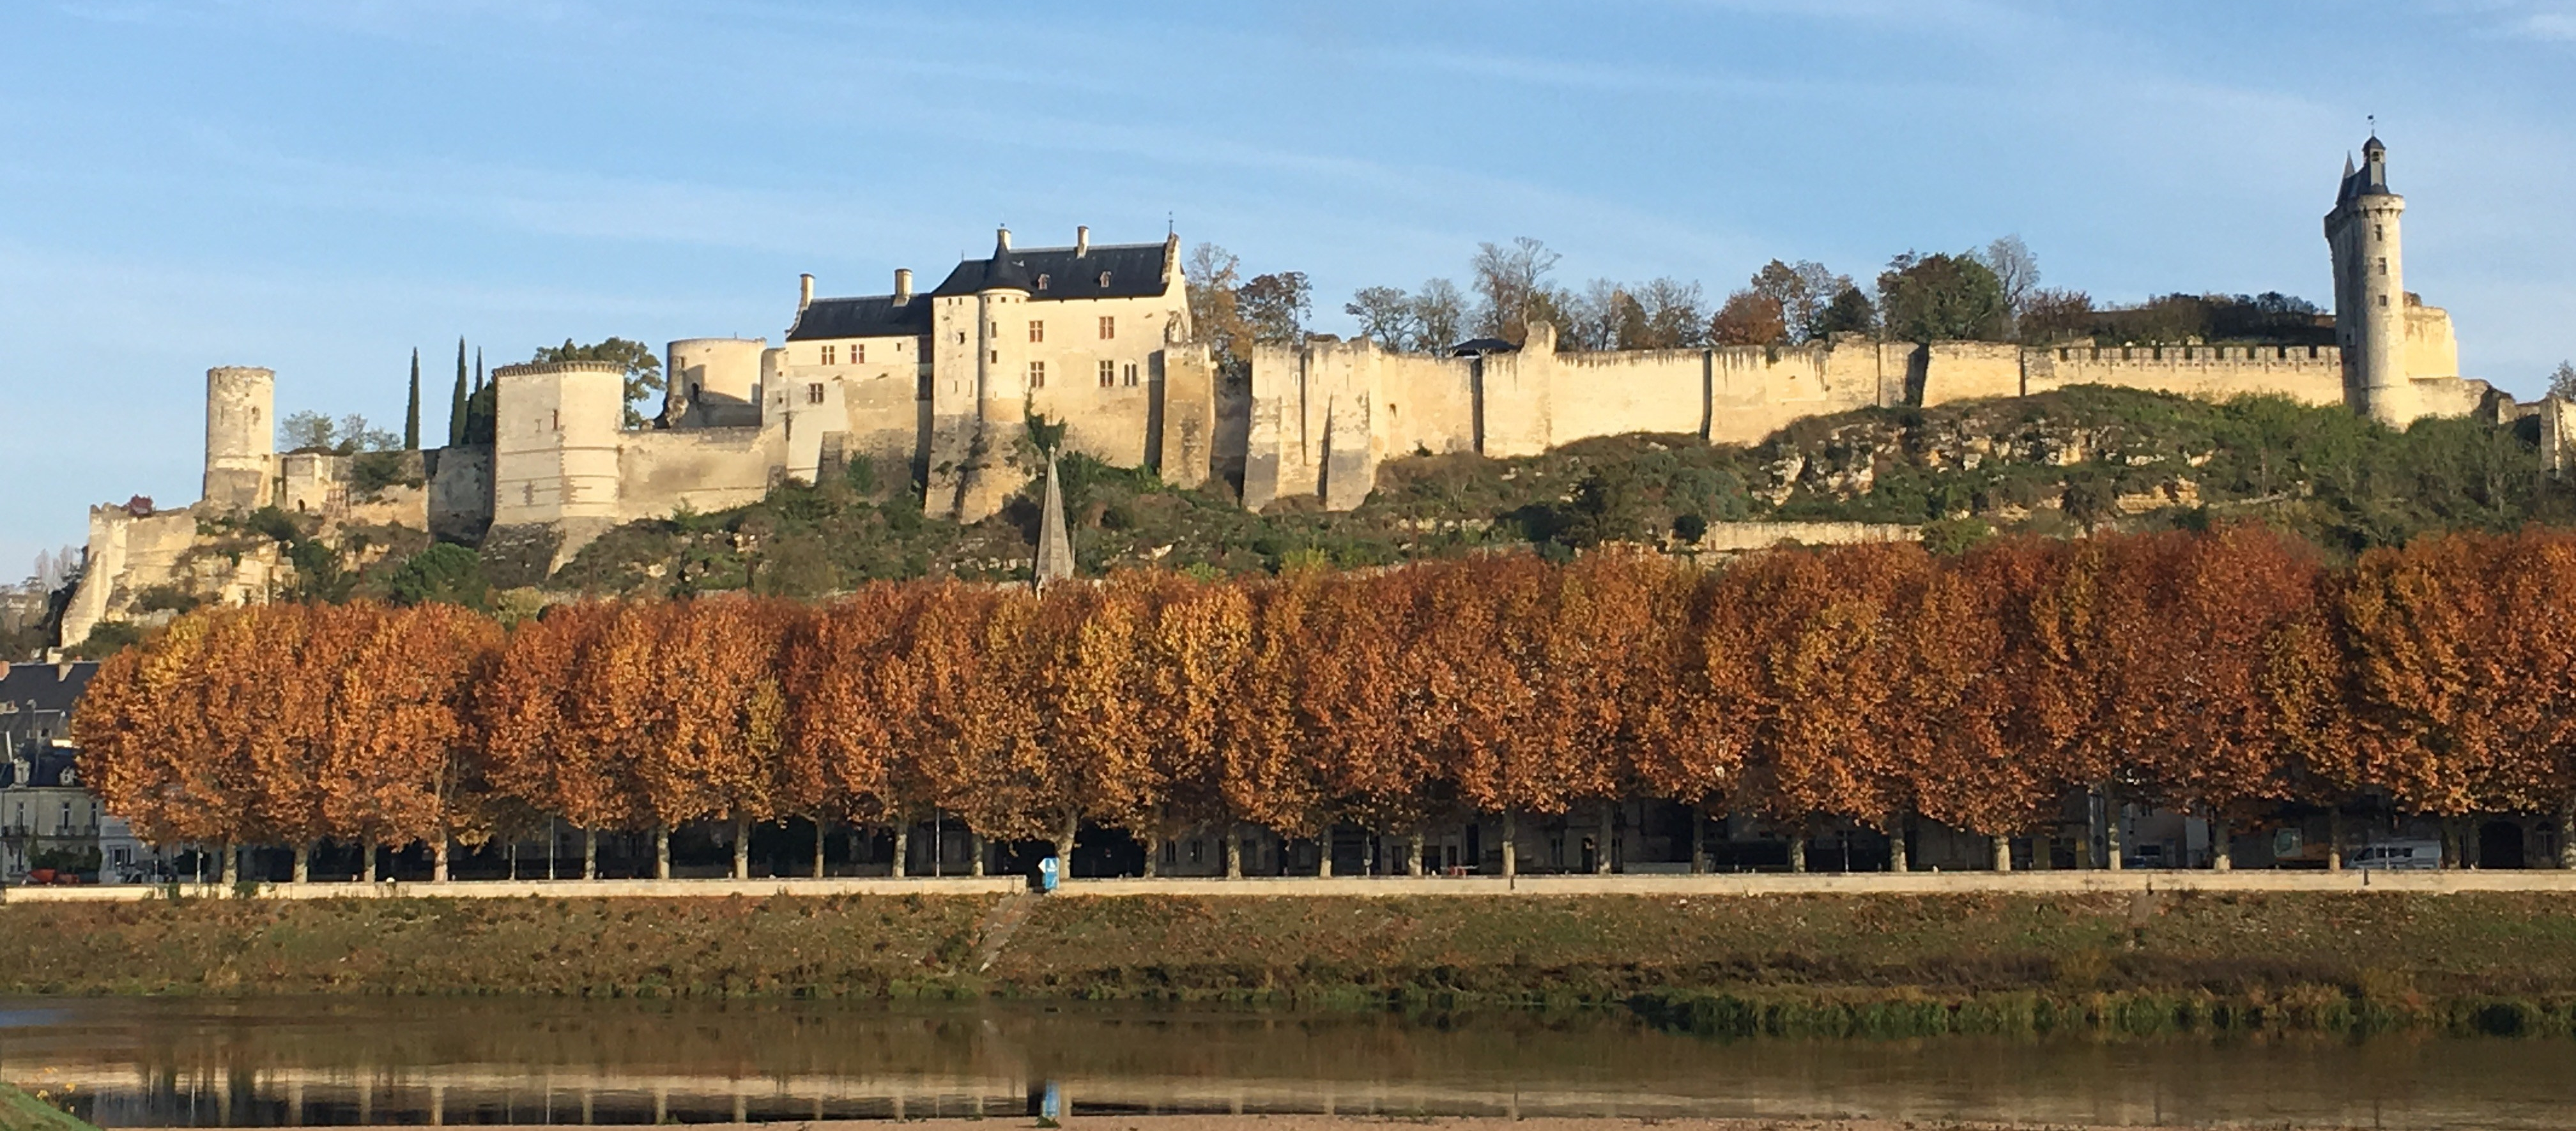 Chambre Hote Chinon Loire Valley Leisure Holidays Your Next Holiday In The Loire Valley